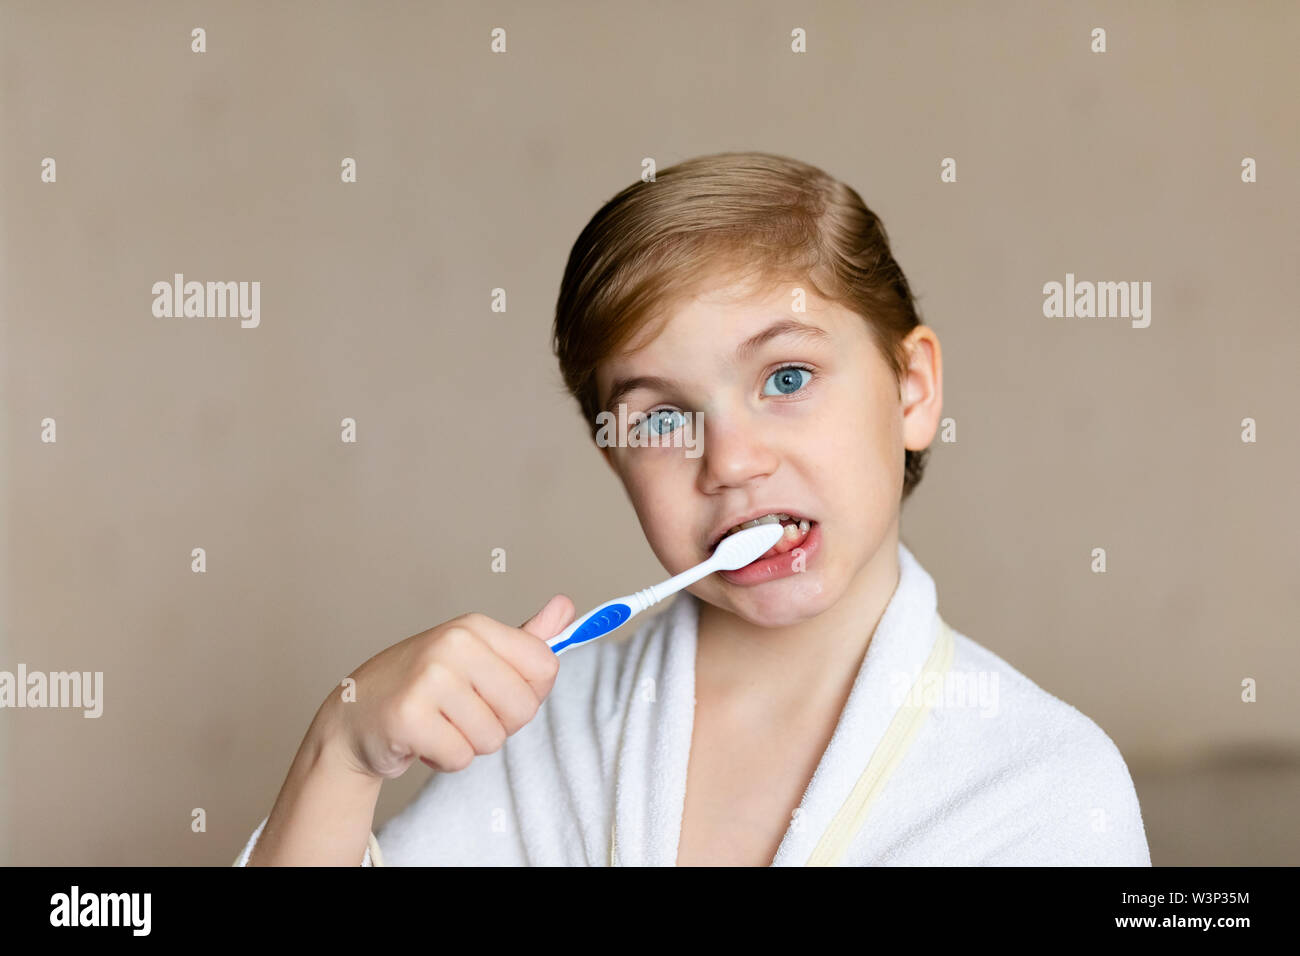 A cute little blonde boy with blue eyes brushing his teeth with a toothbrush. The concept of children's health, medicine. - Stock Image